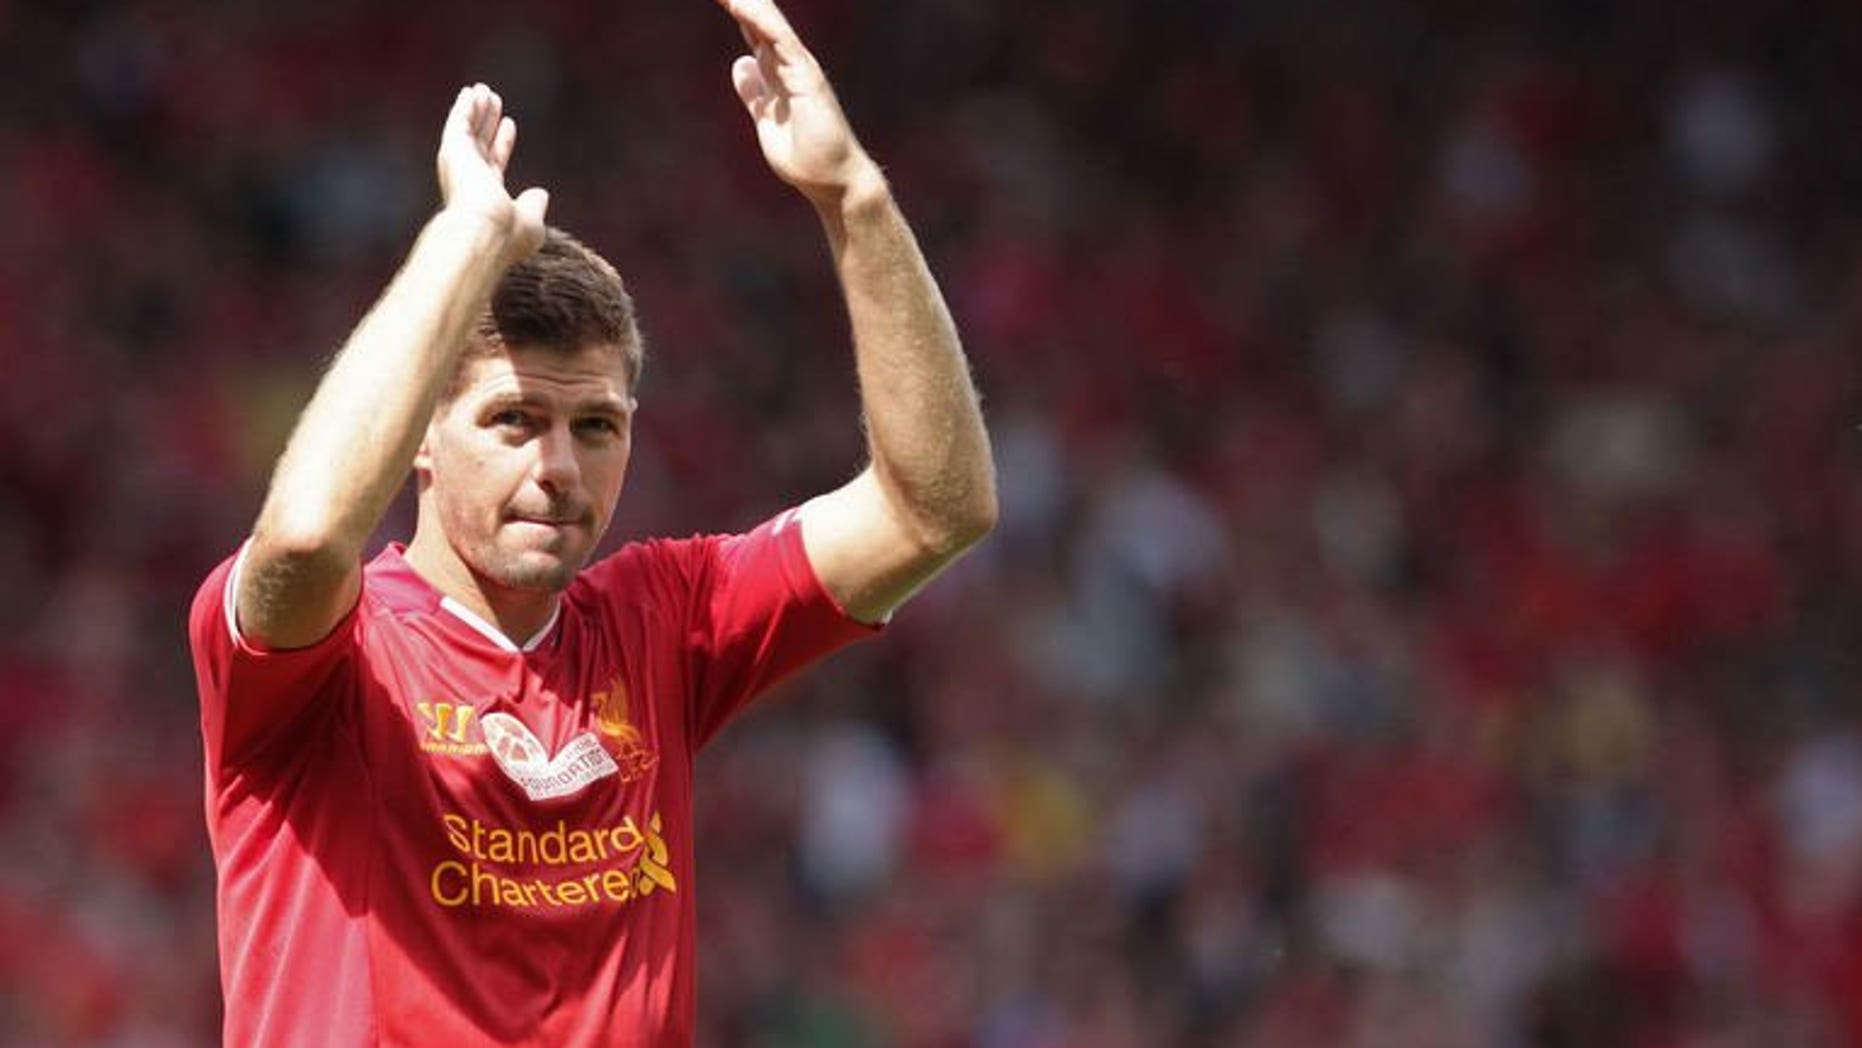 Liverpool captain Steven Gerrard waves to fans after their 2-0 win in the pre-season friendly match against Olympiakos in Liverpool on August 3, 2013. Liverpool supporters paid tribute to Gerrard as their Reds continued preparations for the start of the Premier League season with a 2-0 victory over Olympiakos.